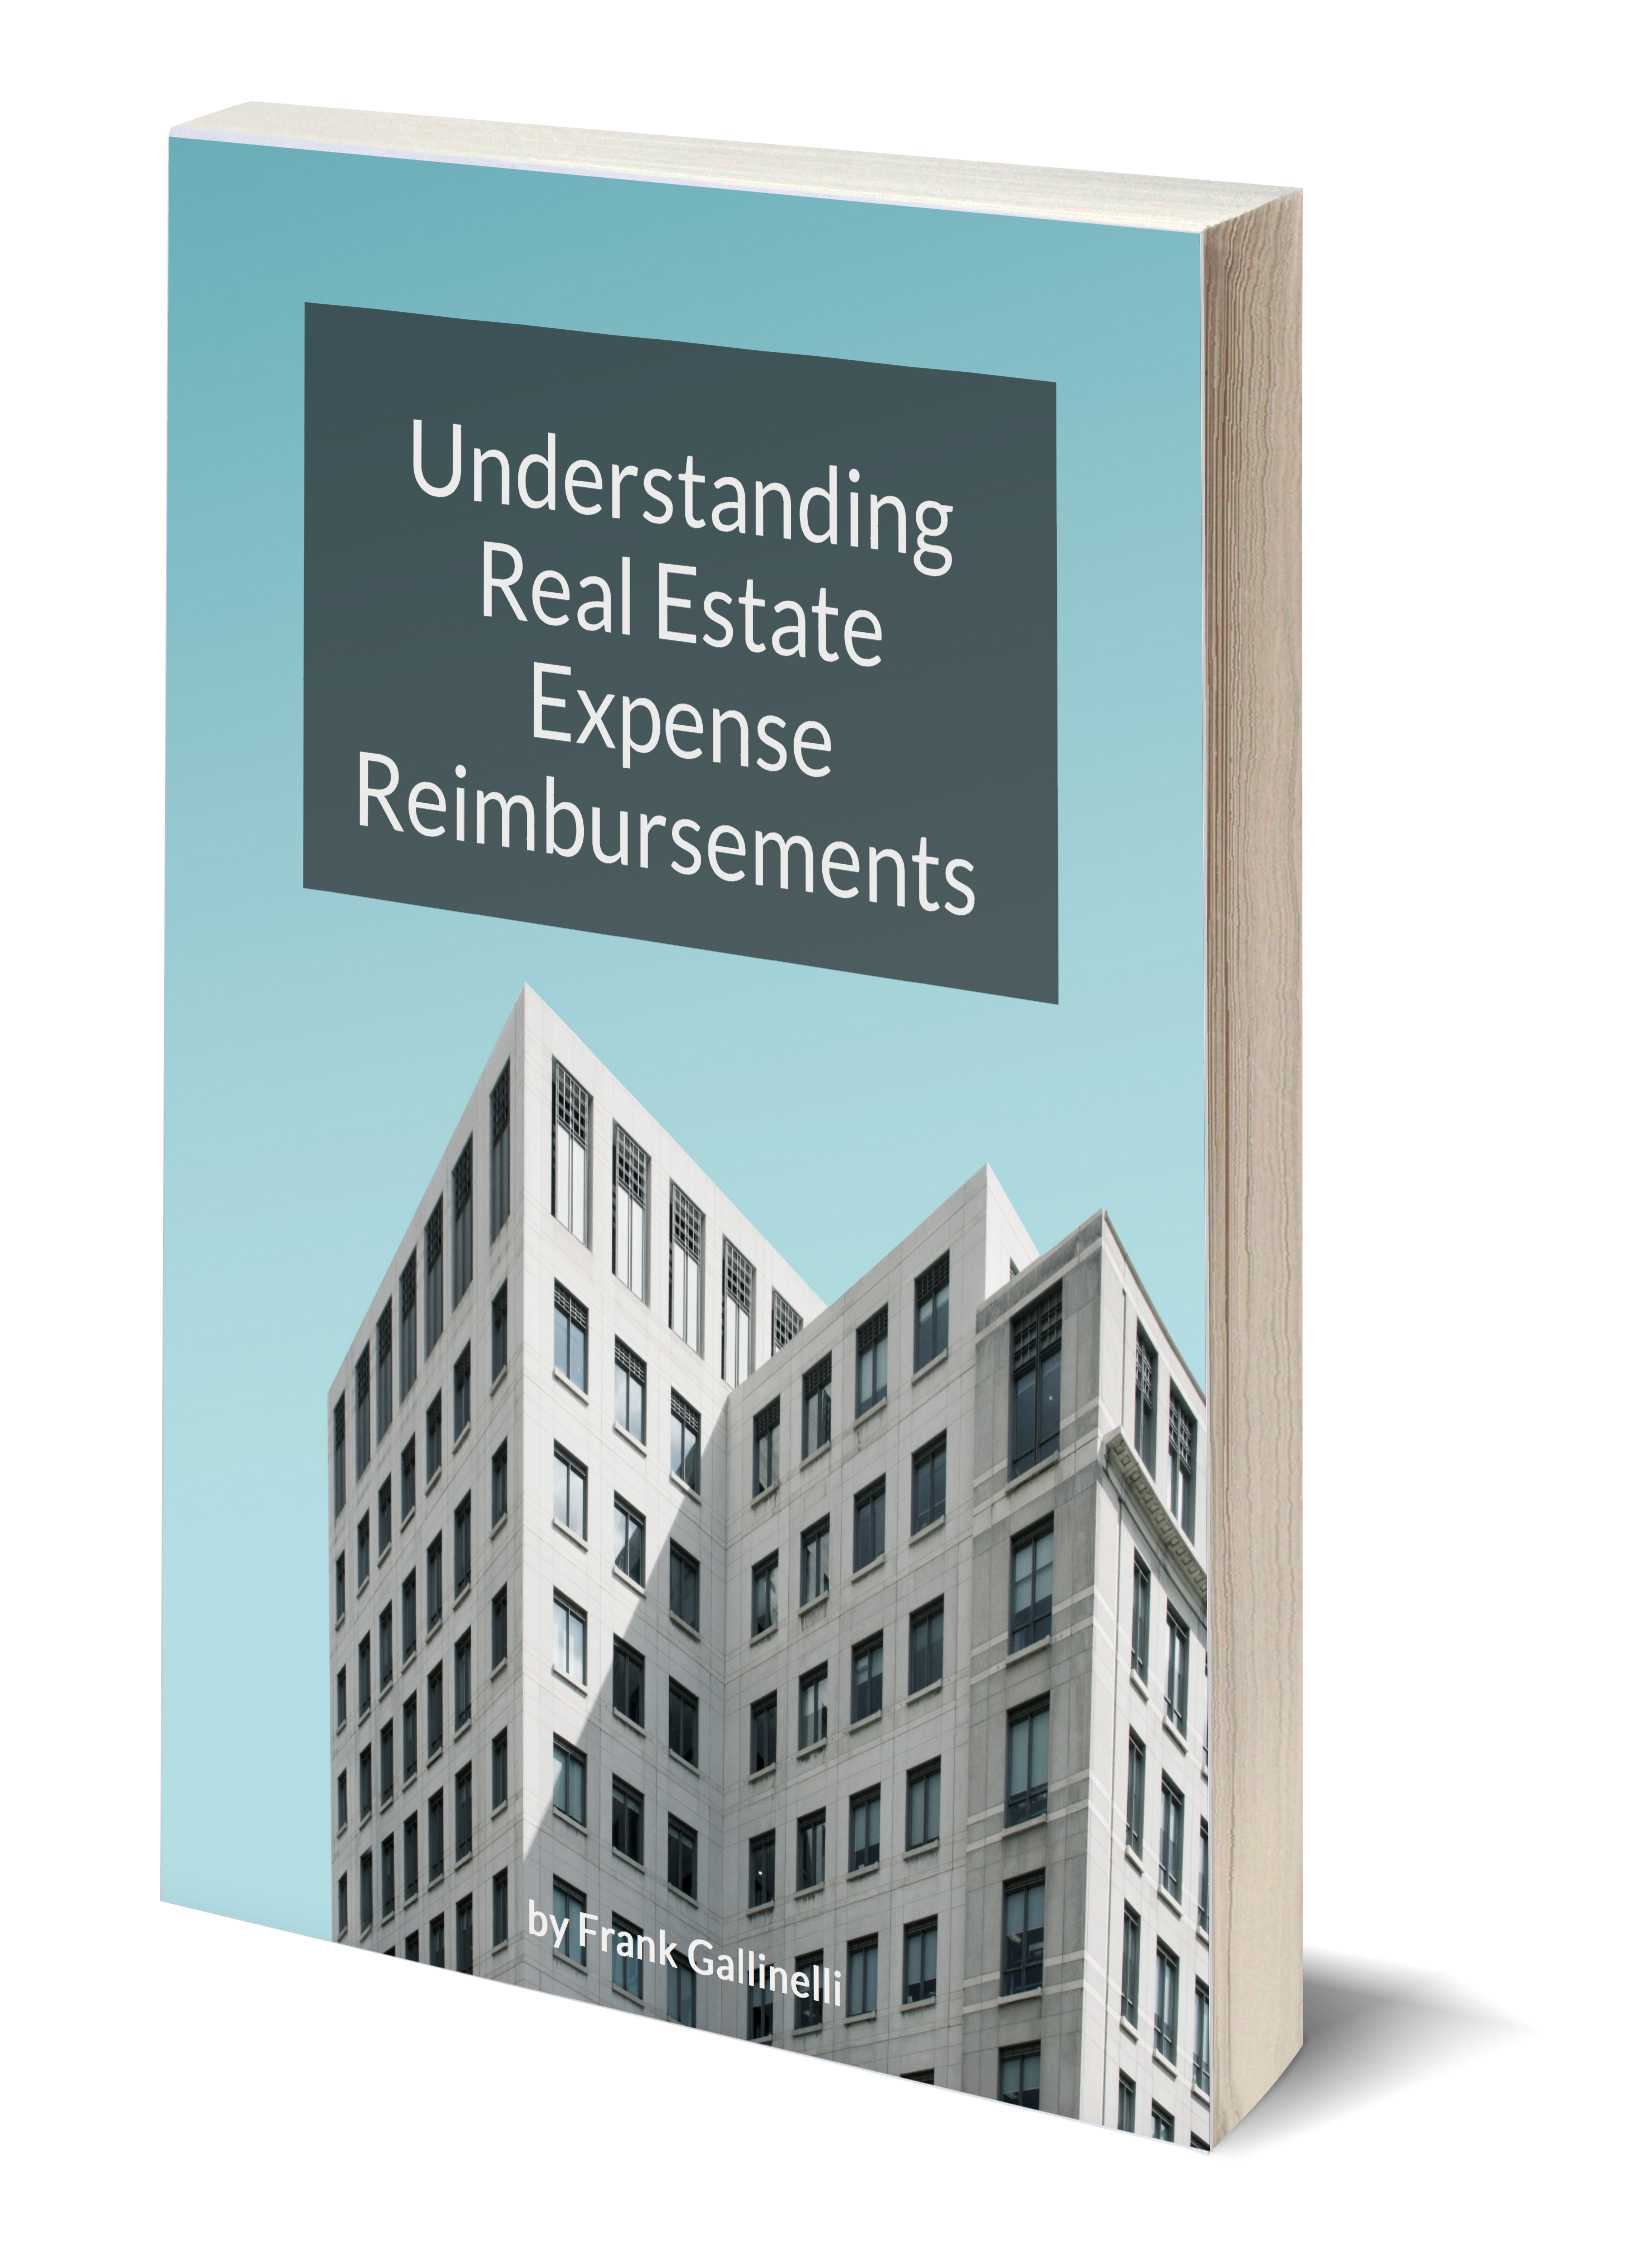 Should You Buy Residential or Commercial Investment Property?